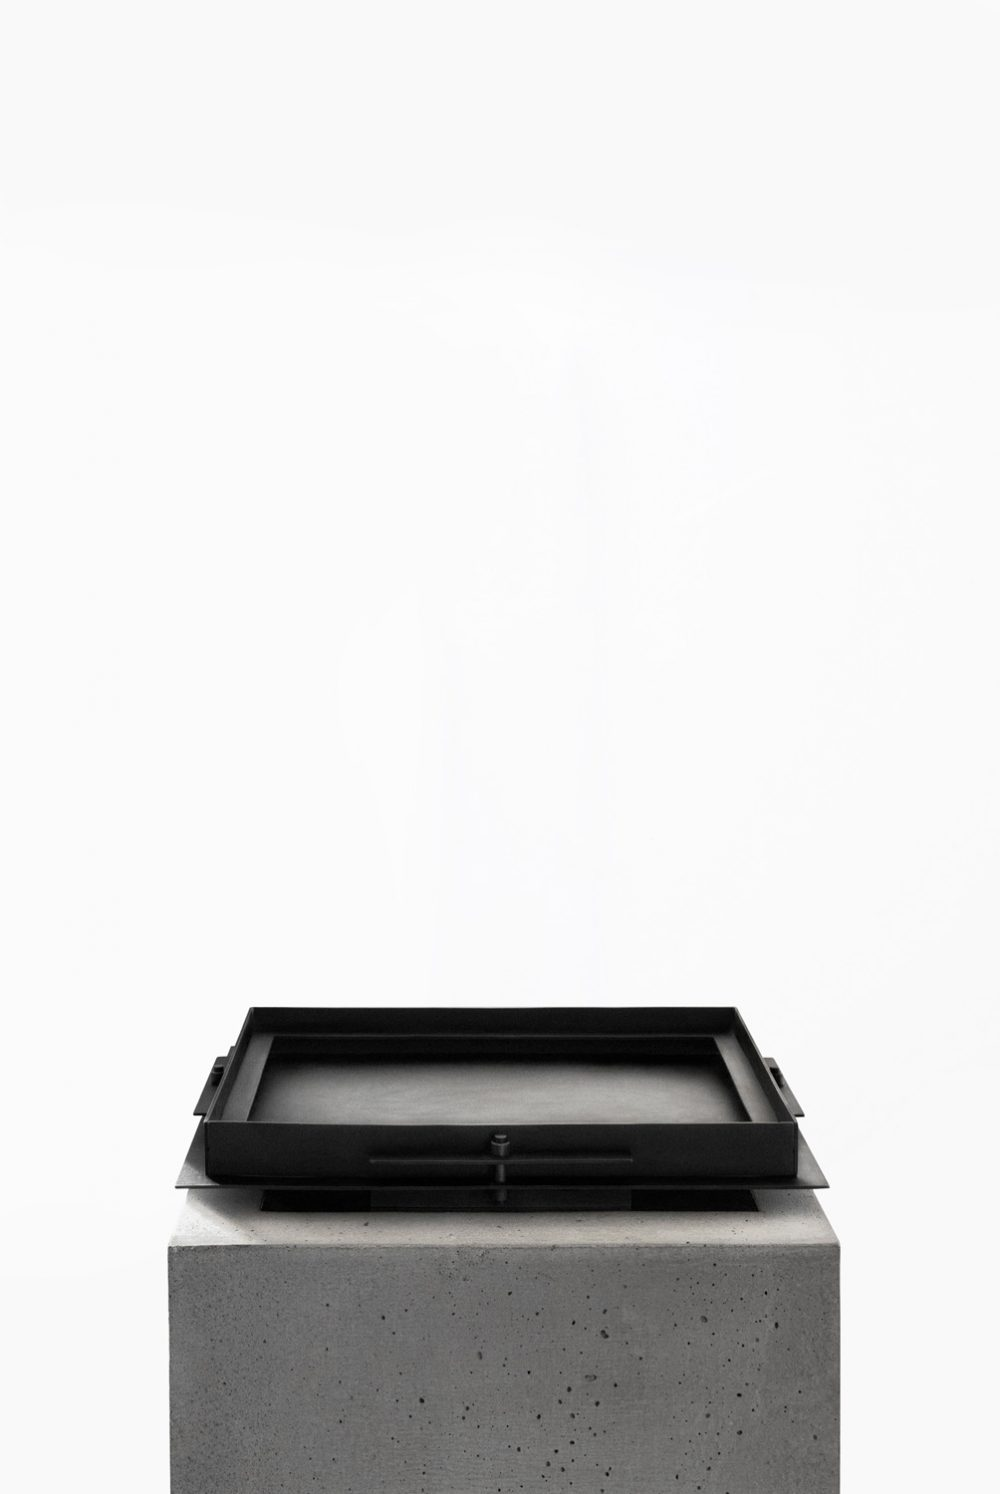 Sizar Alexis Pilier Blackened Steel Tray Large